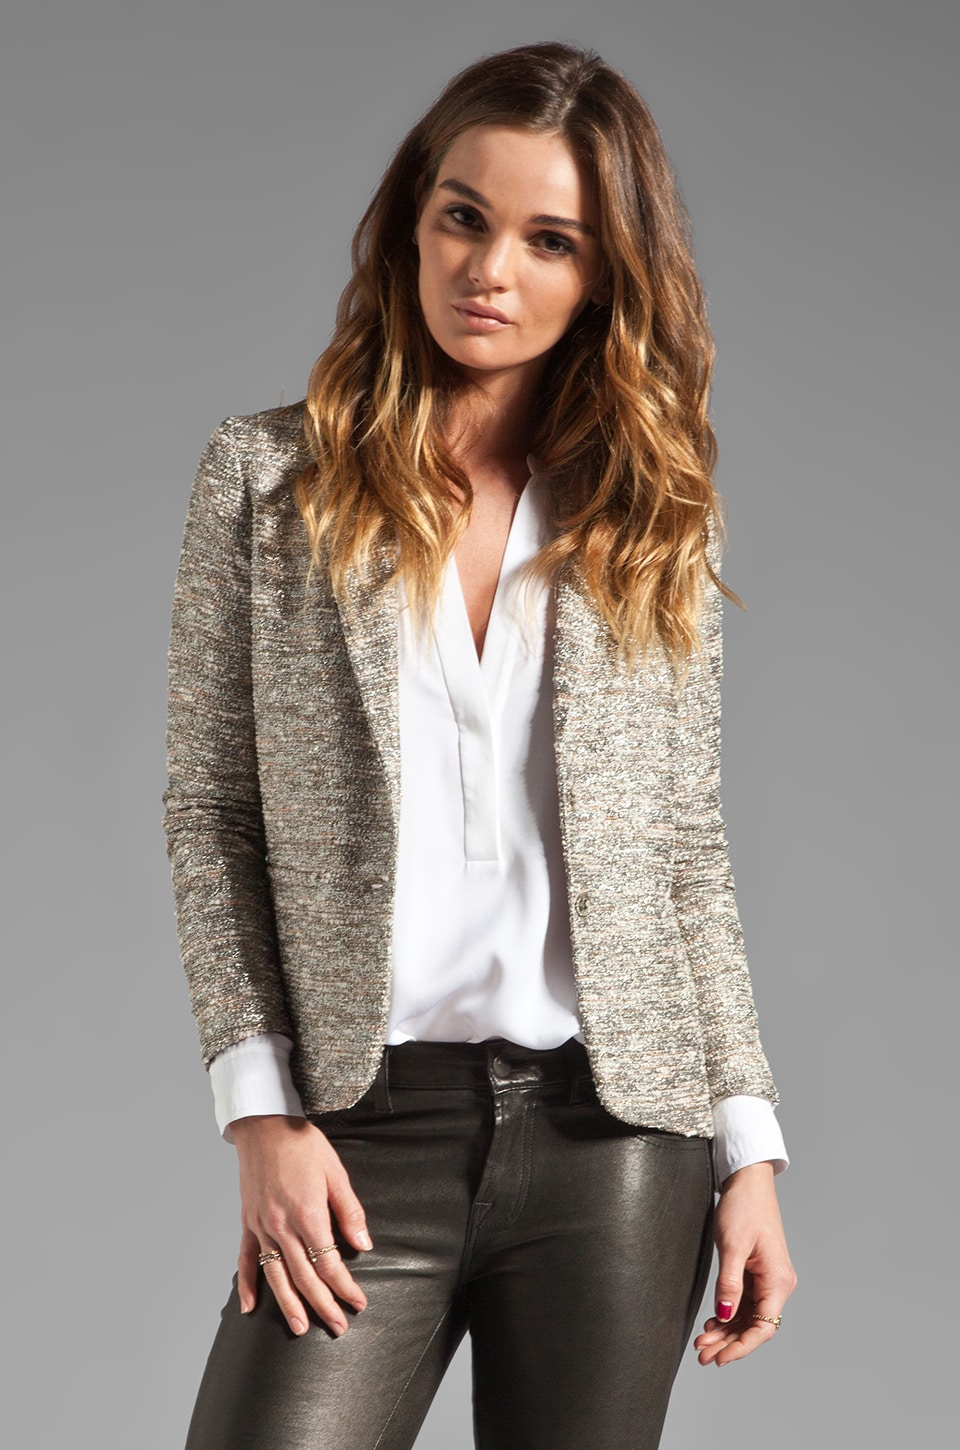 ELKIN Stellar Tweed Lady Blazer in Galactic